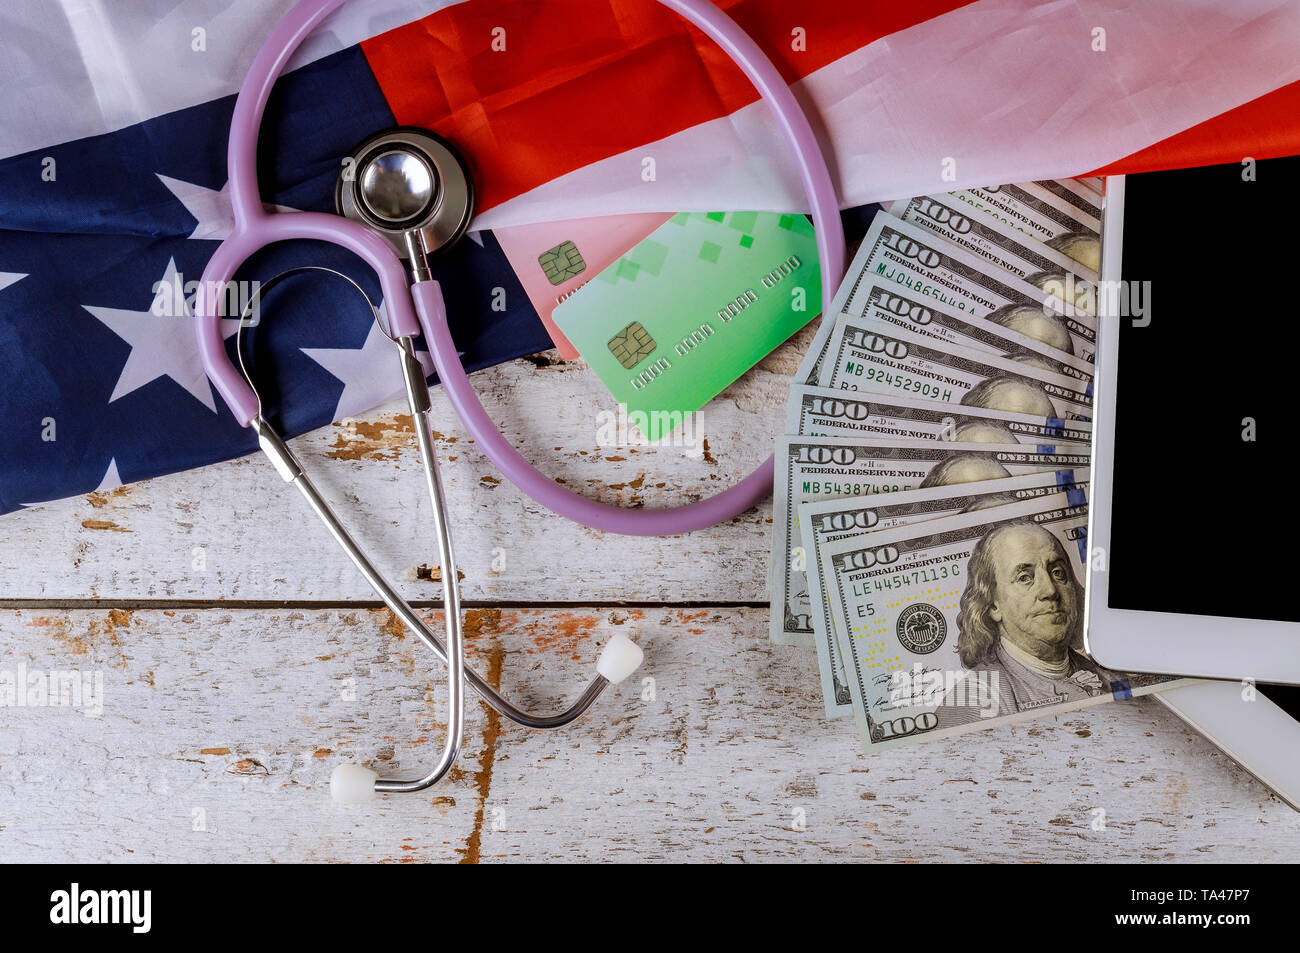 Stethoscope and tablet on credit card us dollar bill american health care service - Stock Image